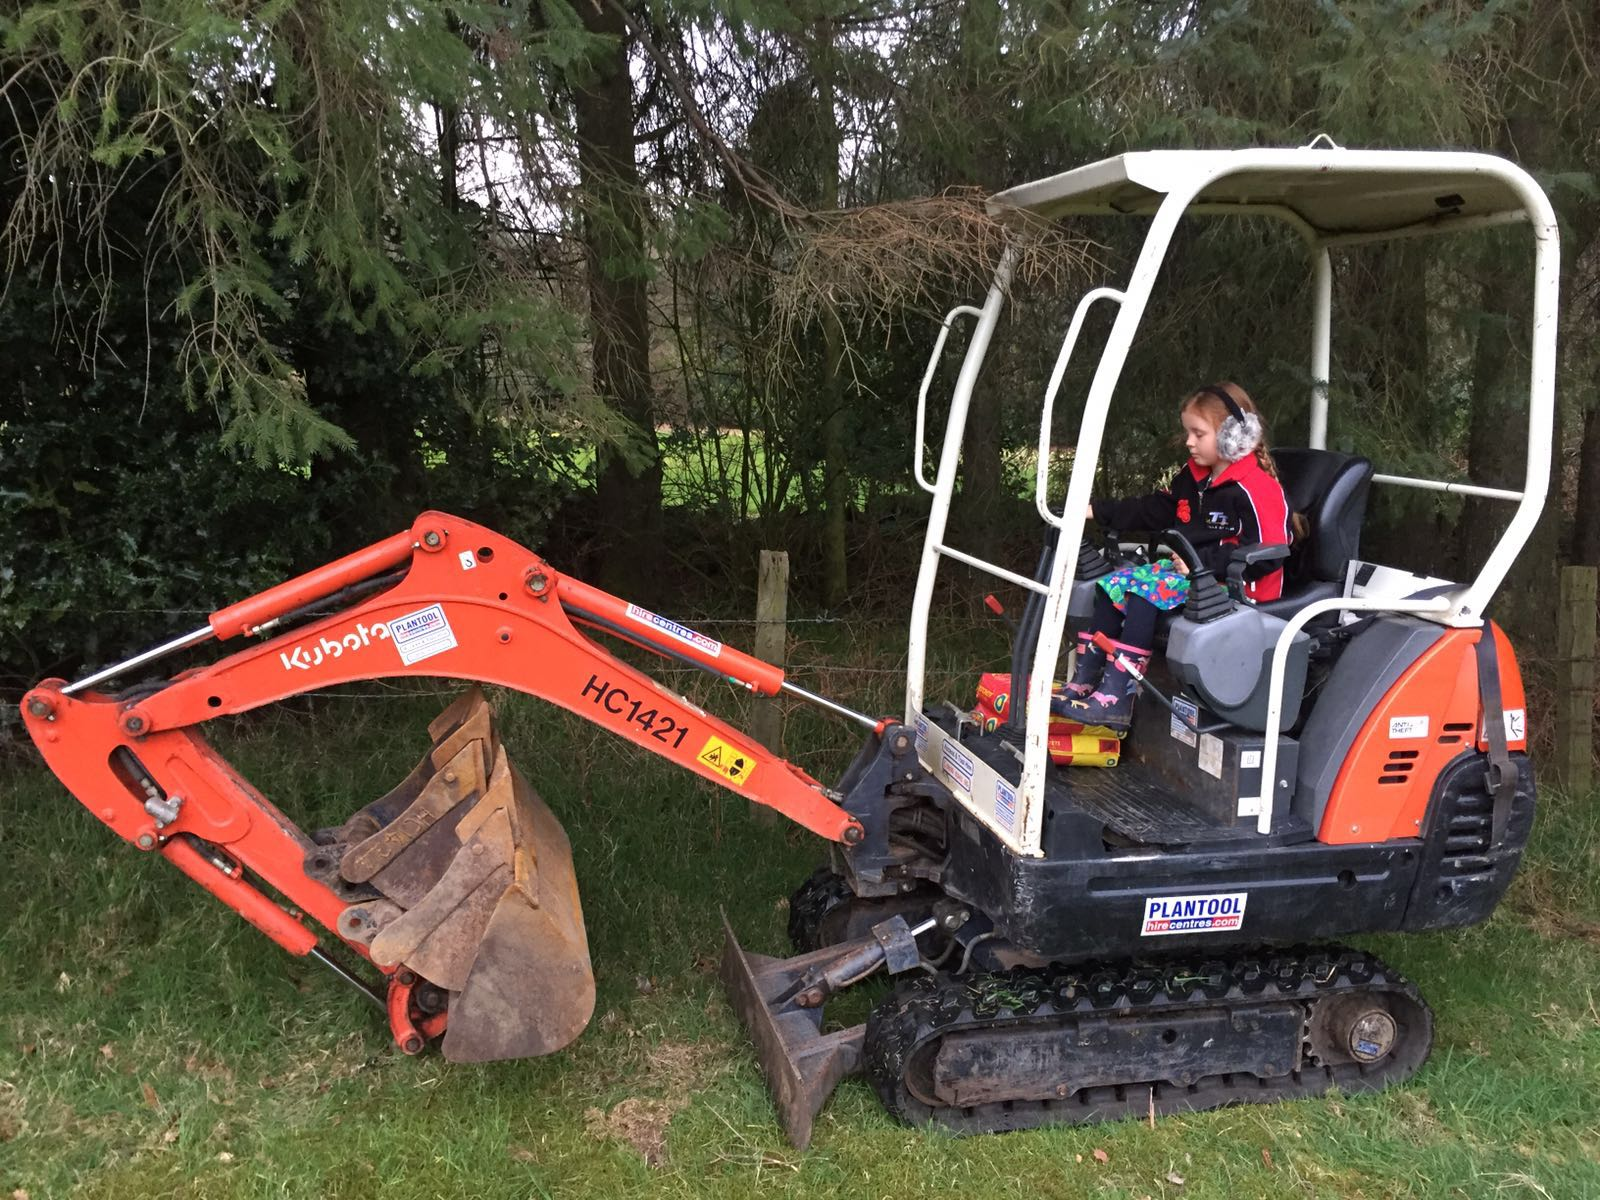 Emily on Plantool's mini excavator